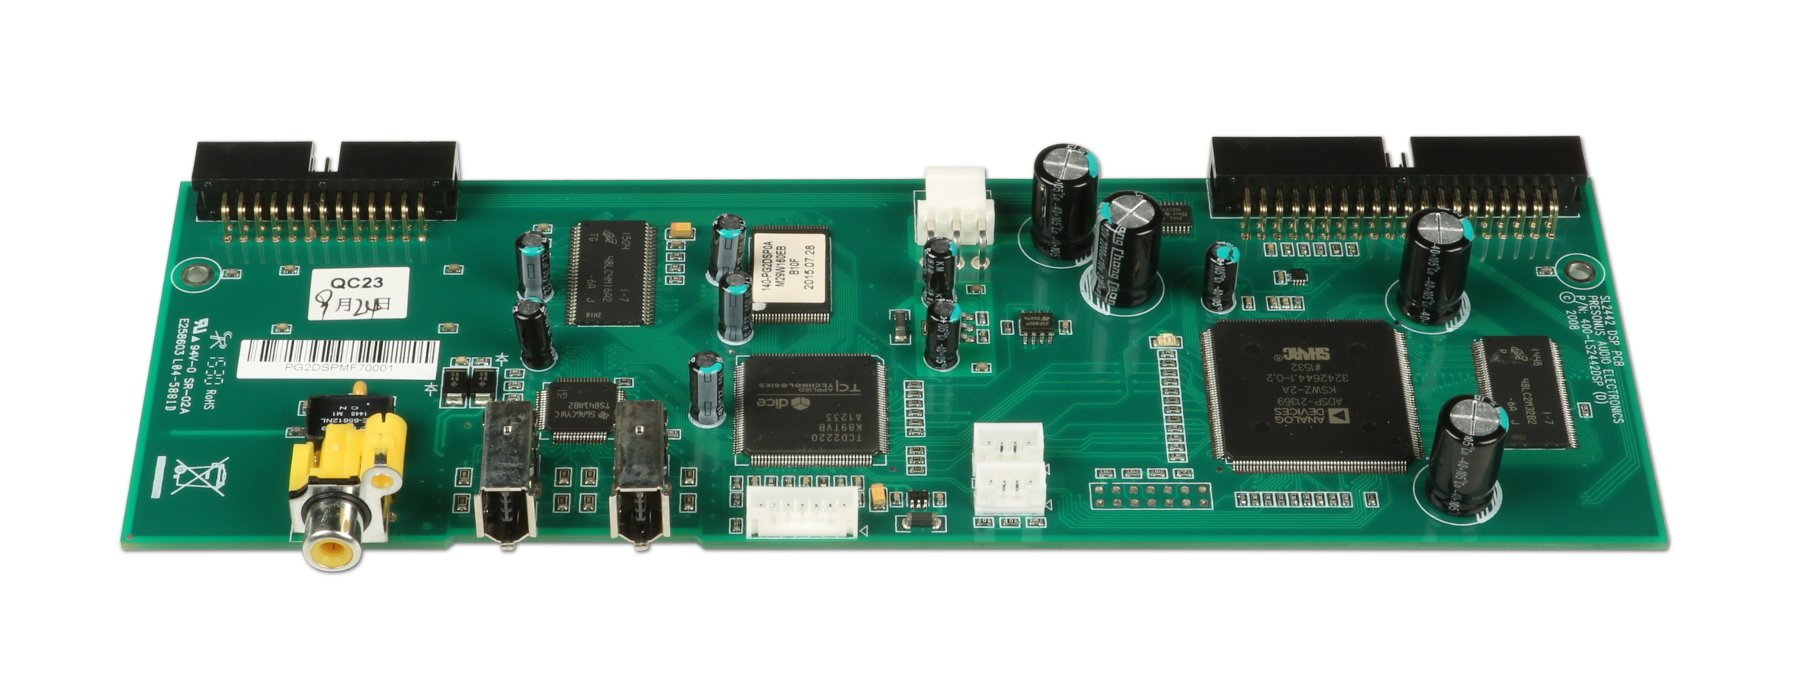 DSP Firewire PCB Assembly for StudioLive 24.4.2